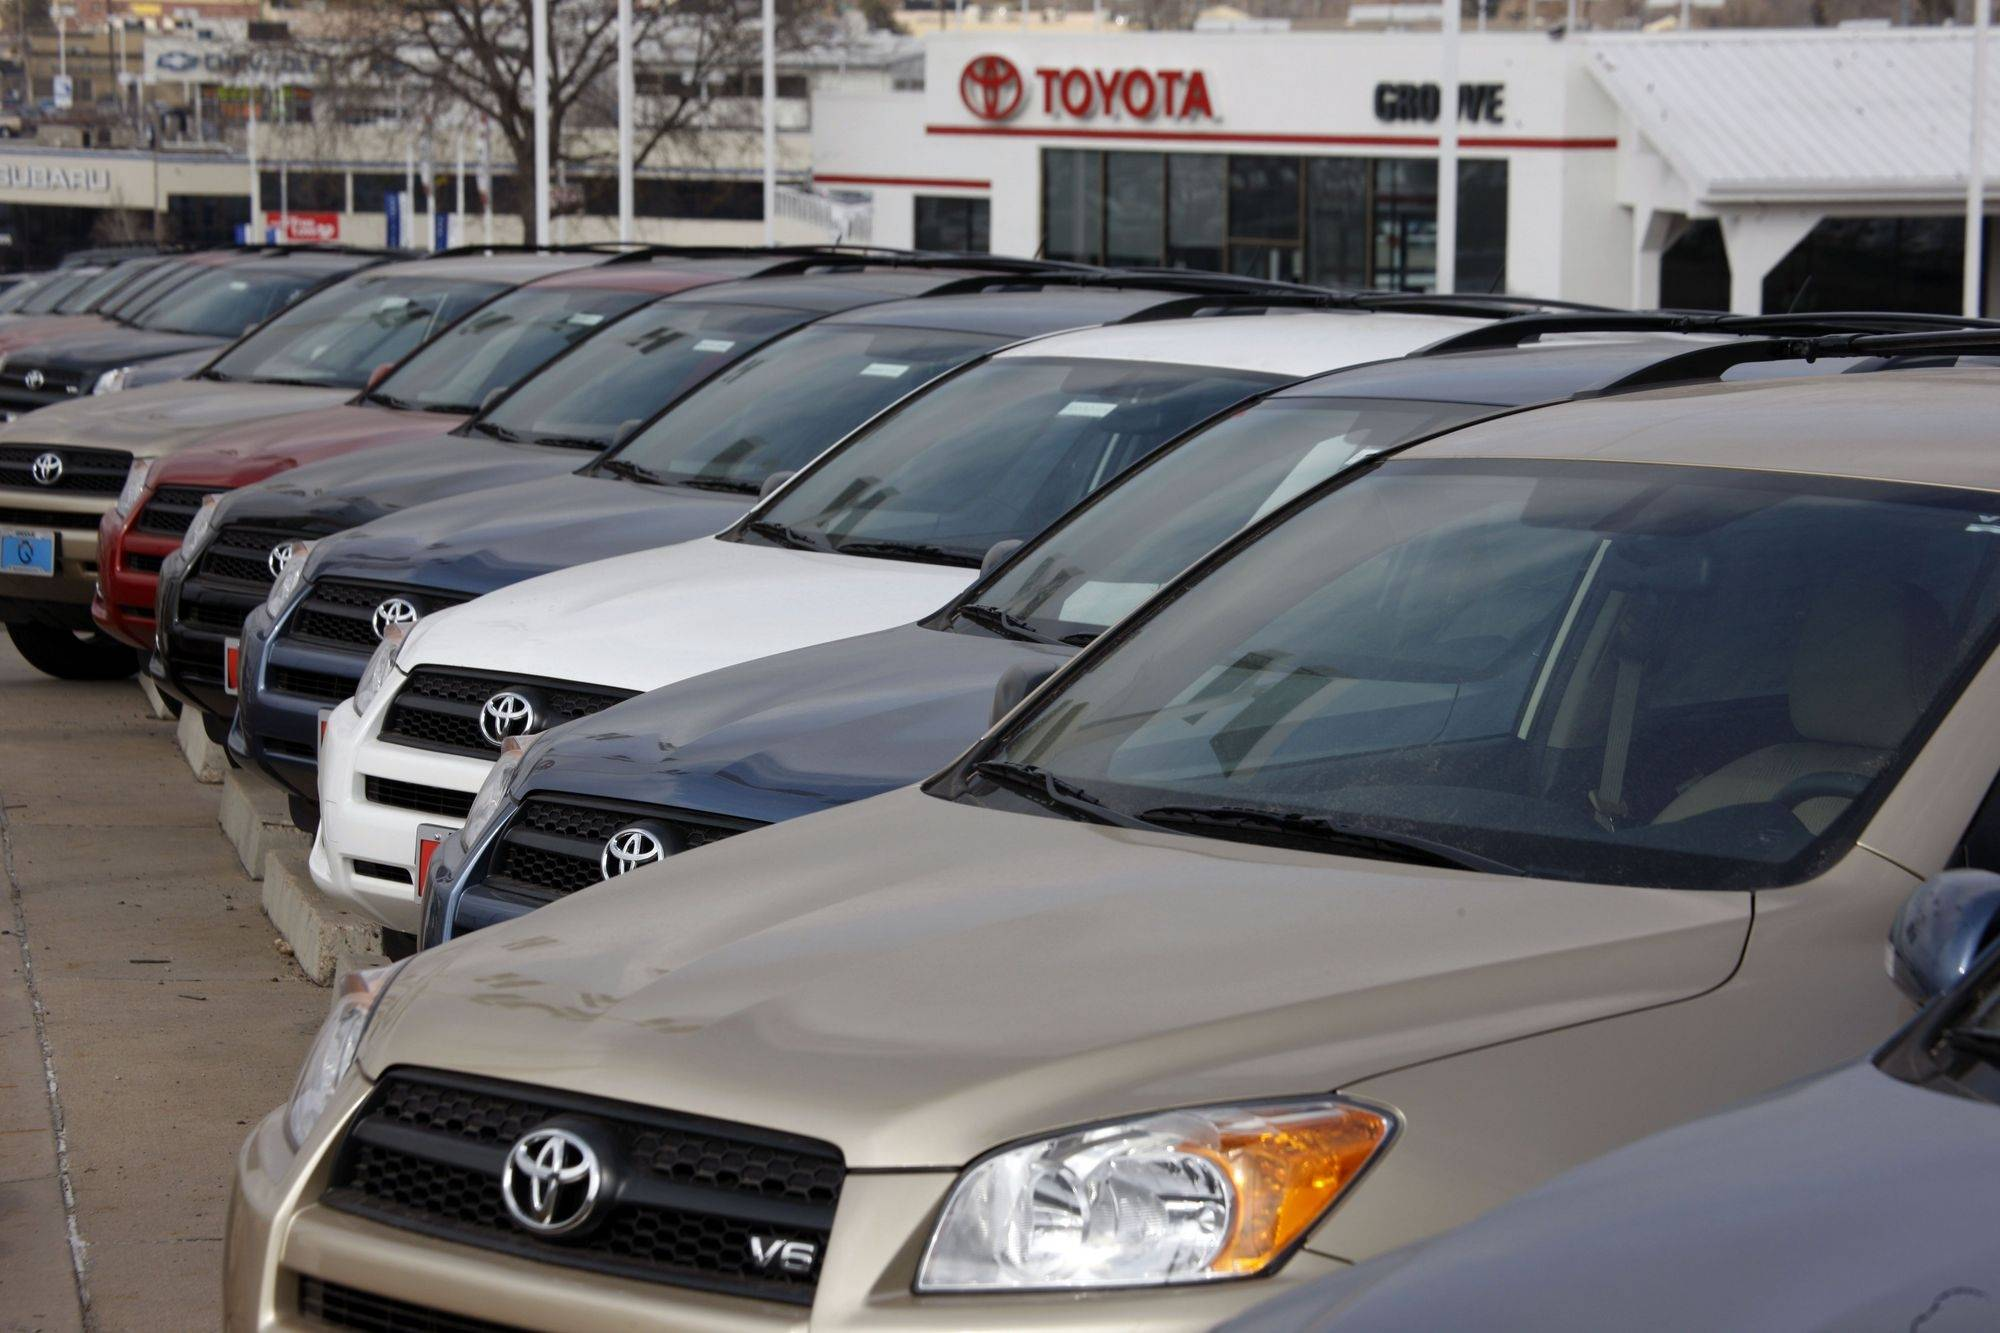 Toyota 2010 RAV4 sports utility vehicles sit in a long row at a Toyota dealership. Toyota said Thursday that U.S. sales in March surged 41 percent based on unprecedented incentives.